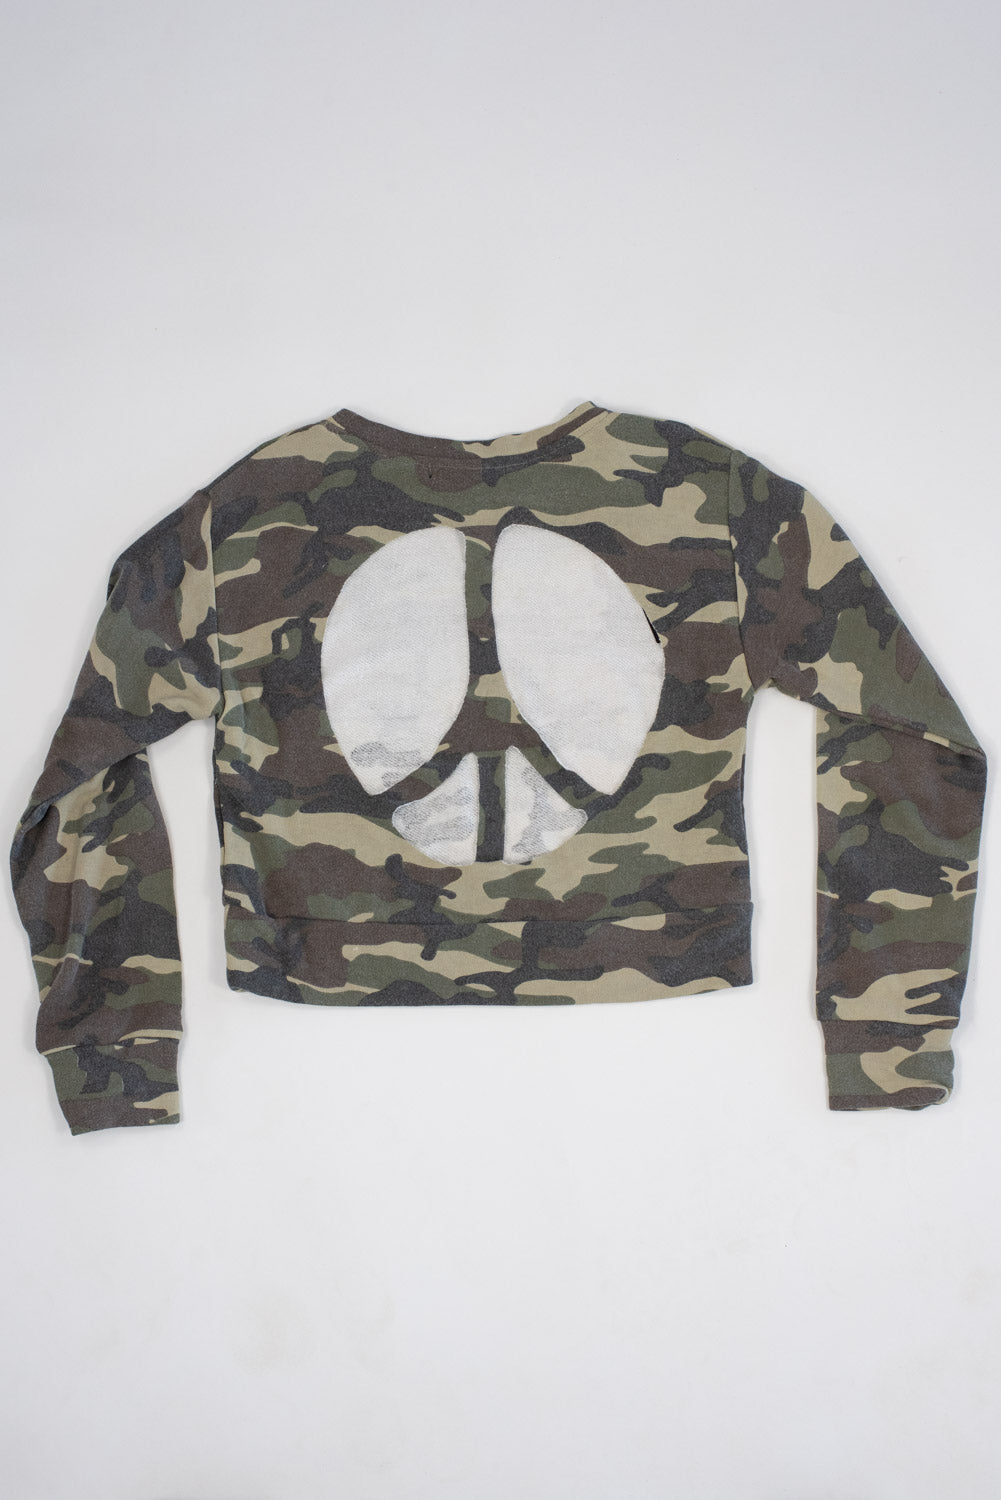 *Camo Peace Cut-Out Cropped Sweatshirt*